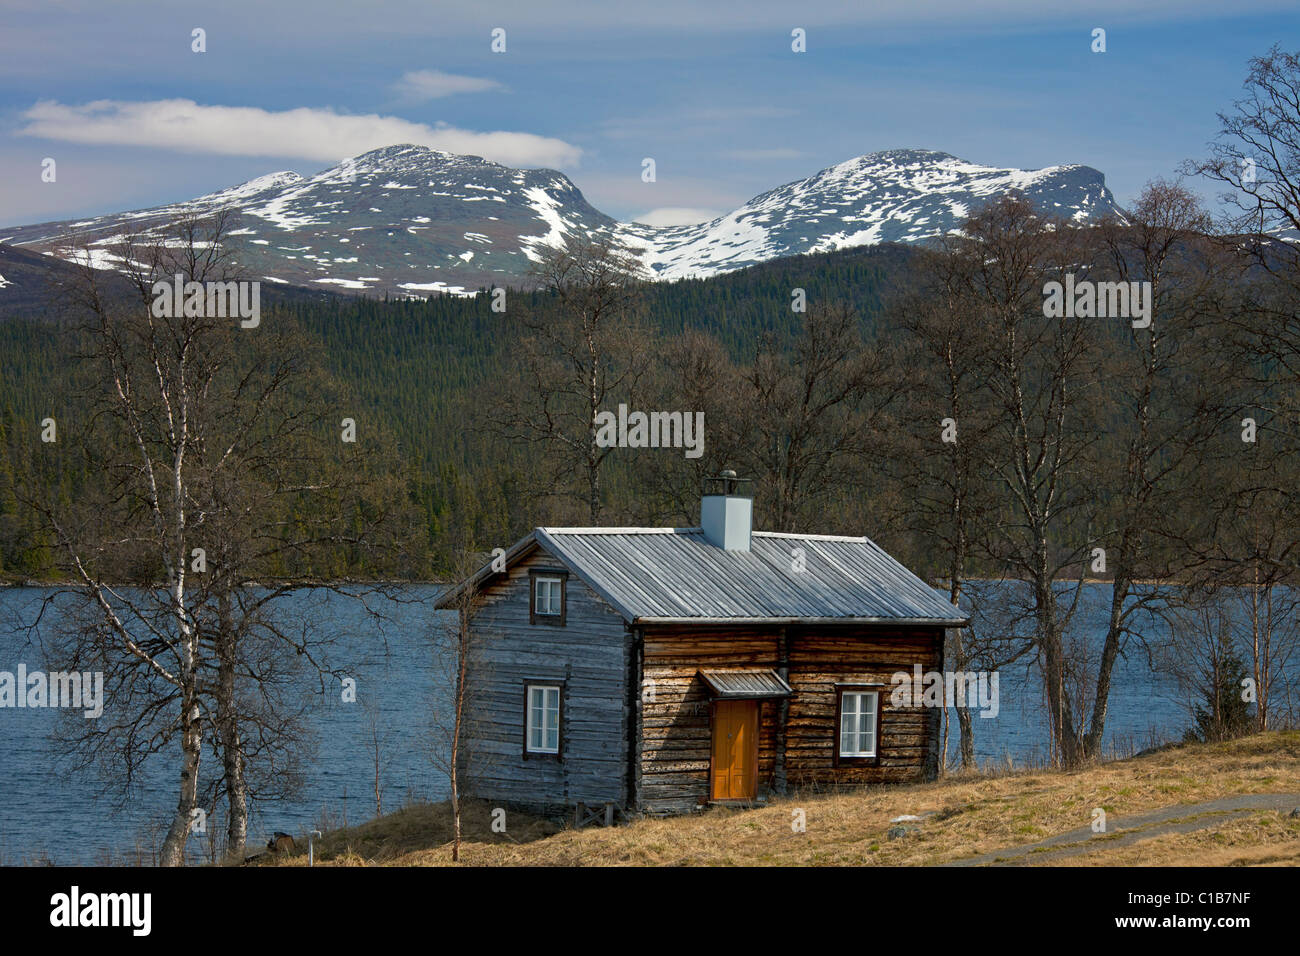 Log cabin along lake at Fatmomakke, Lapland, Sweden Stock Photo